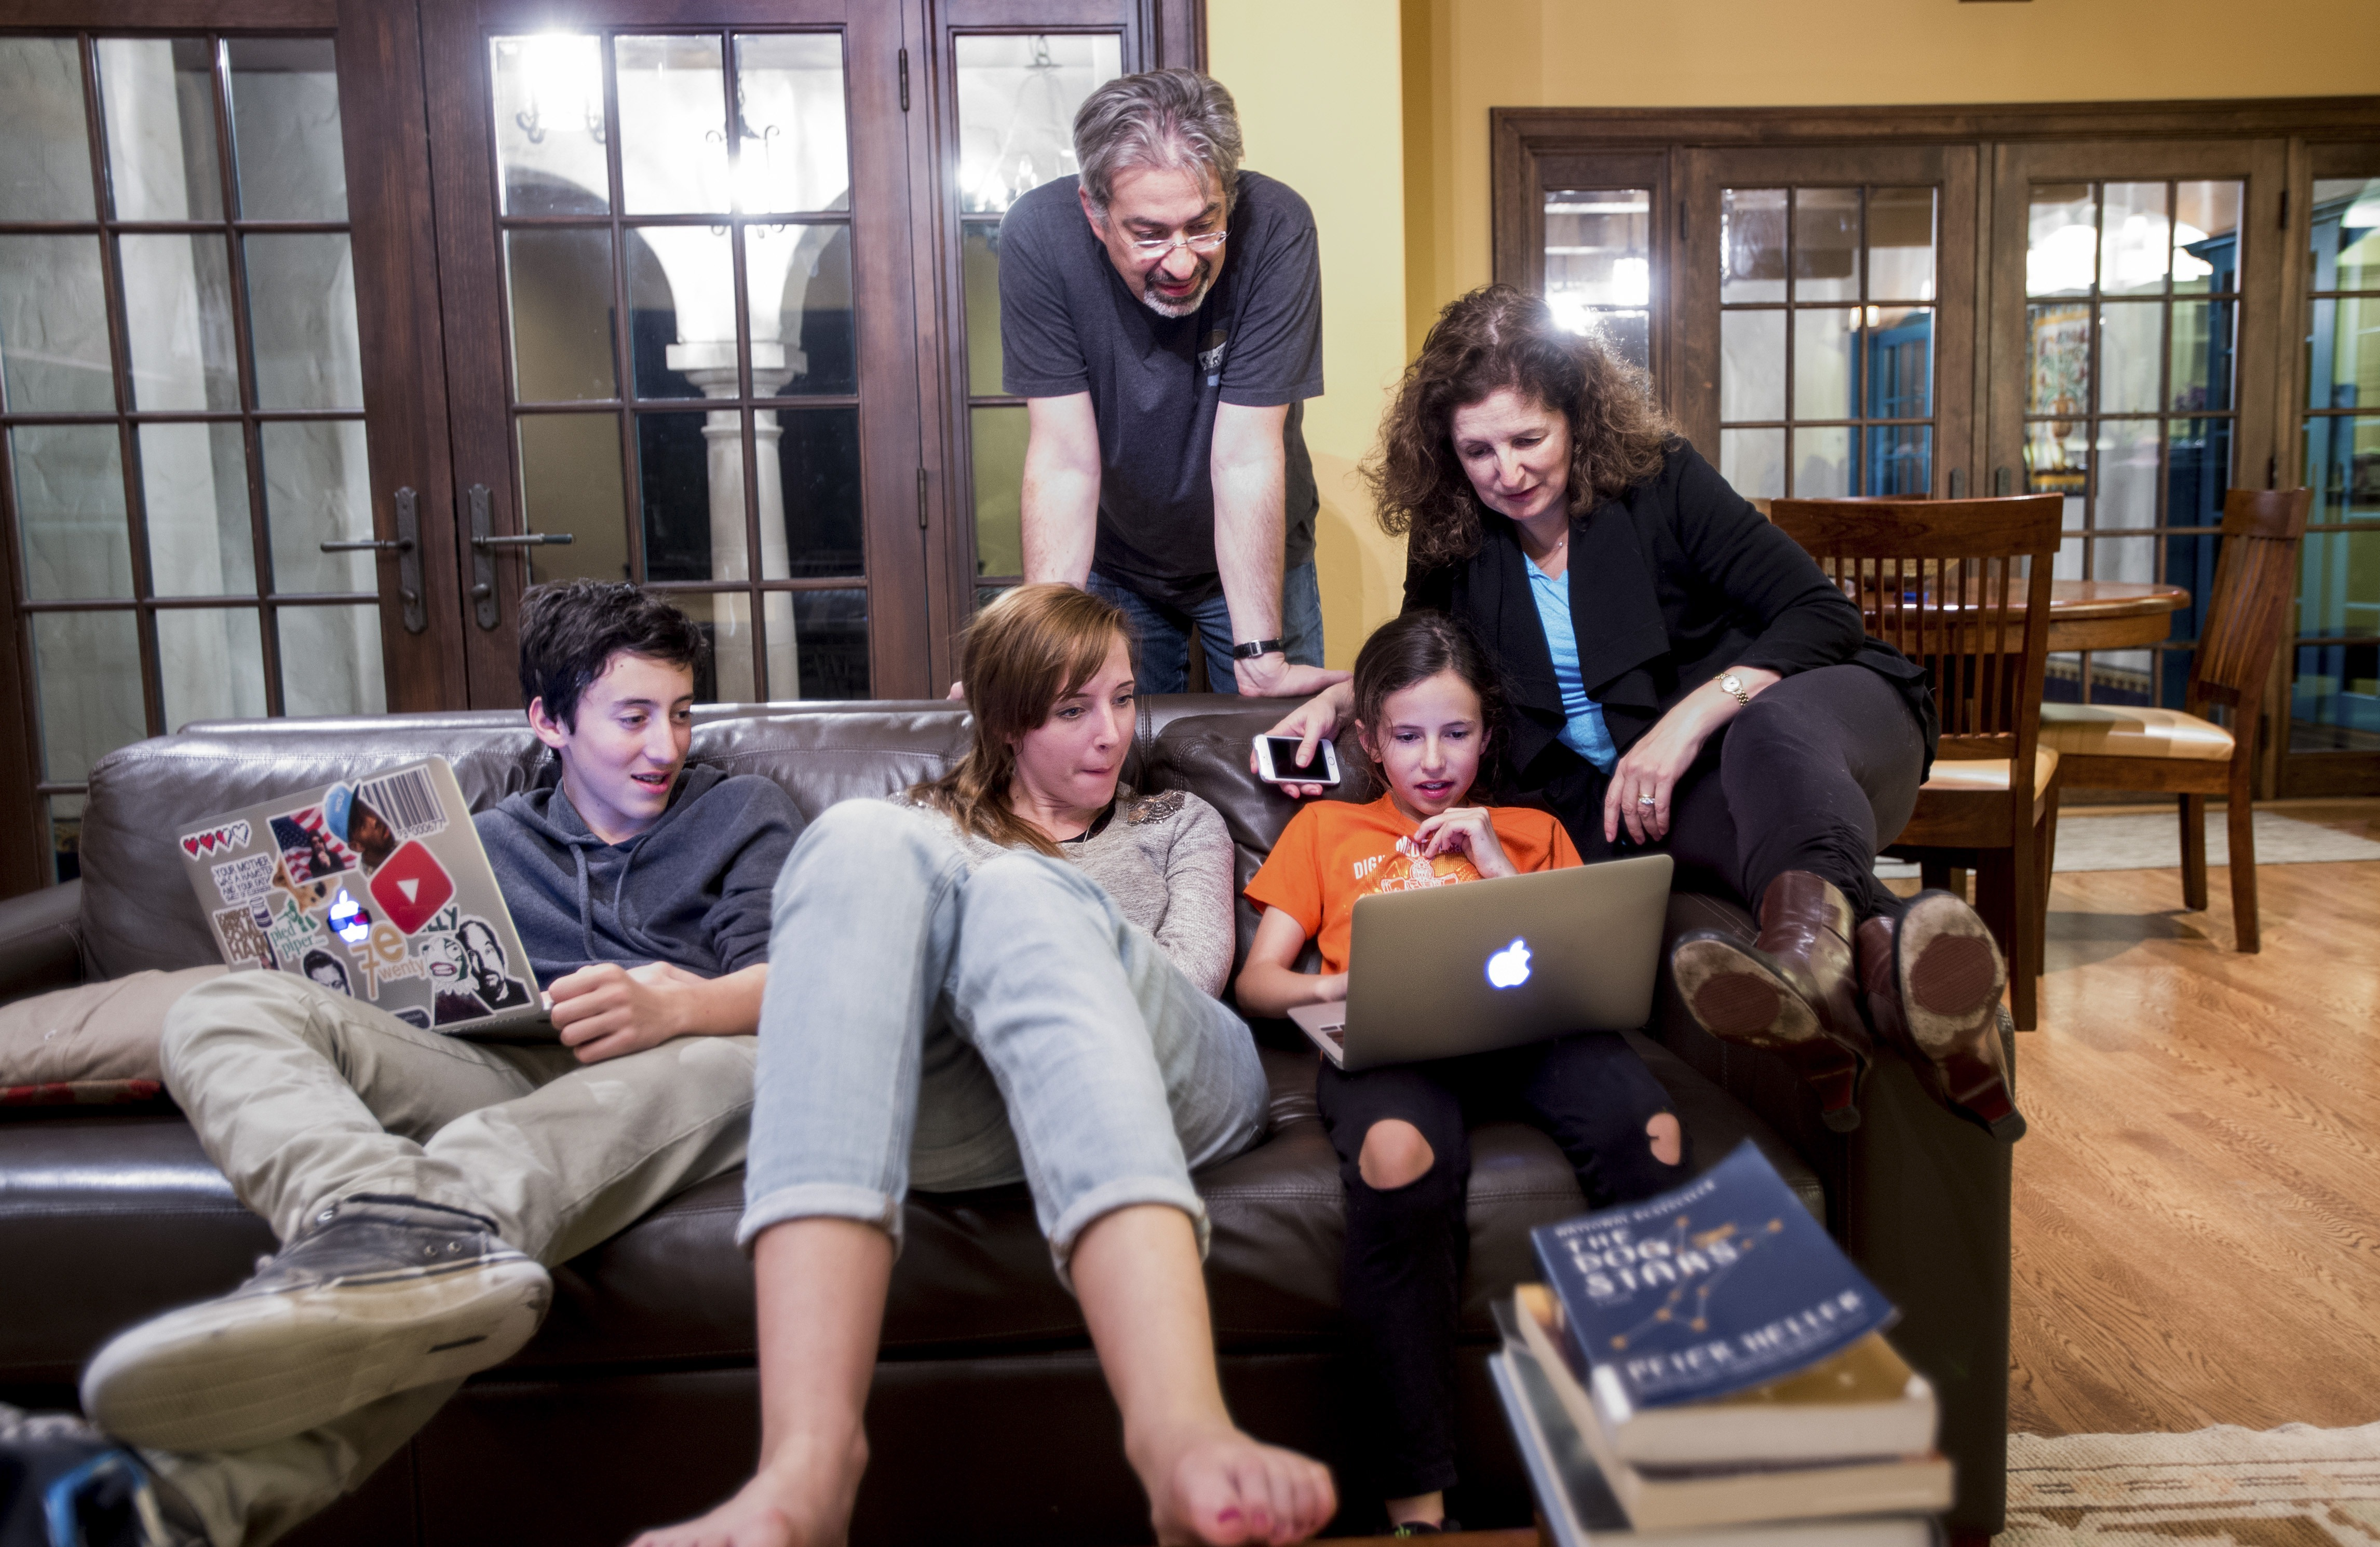 Max Schireson, the former chief executive of MongoDB who stepped down to spend more time with his children, at home in Stanford, Calif.